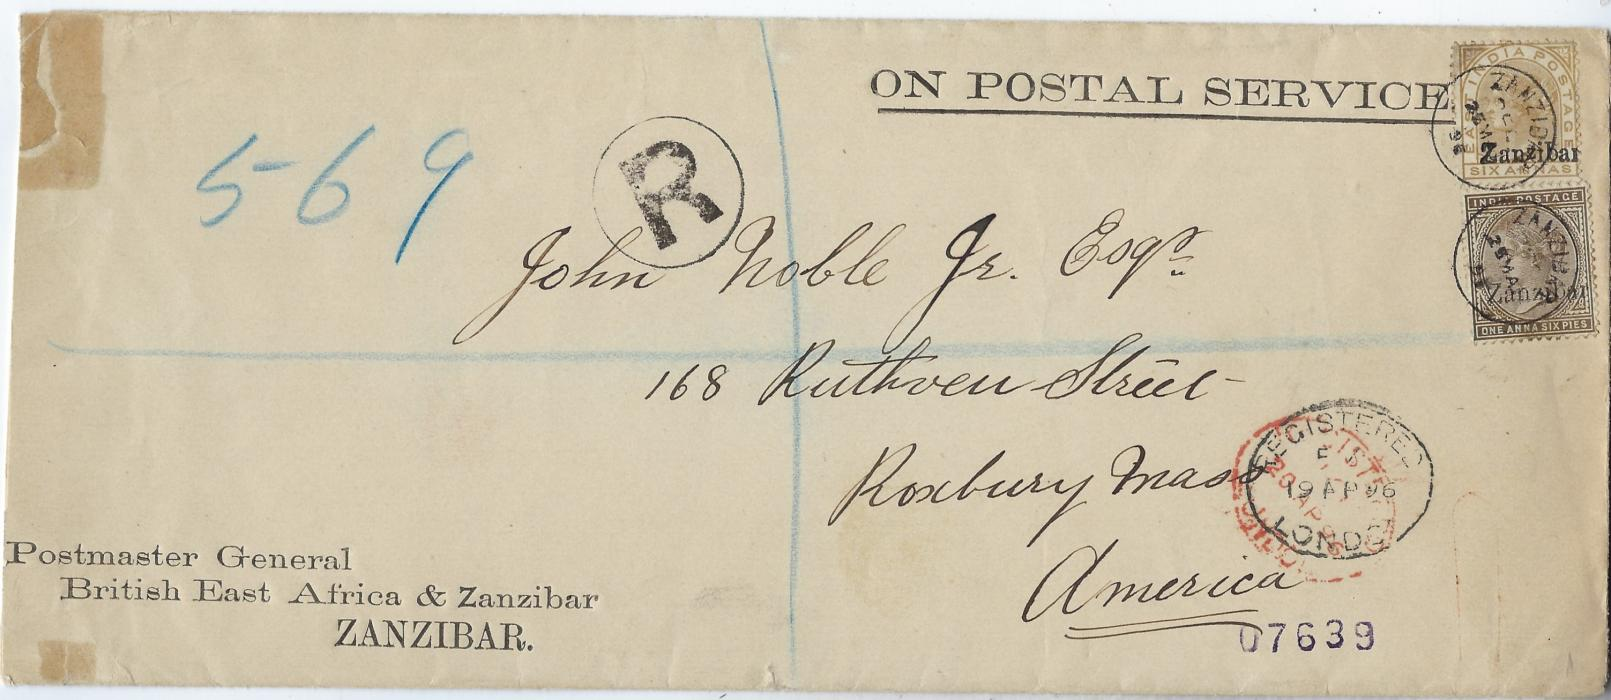 Zanzibar 1896 (25 Mar) registered 'On Postal Service' from 'Postmaster General' envelope to Roxbury, Mass, USA franked 1895-96 India overprinted 1a.6p. and 6a. tied neat cds, London transits below, reverse with Boston transit and arrival date stamps. Repaired tear at left. The 6a showing a very heavy overprint.